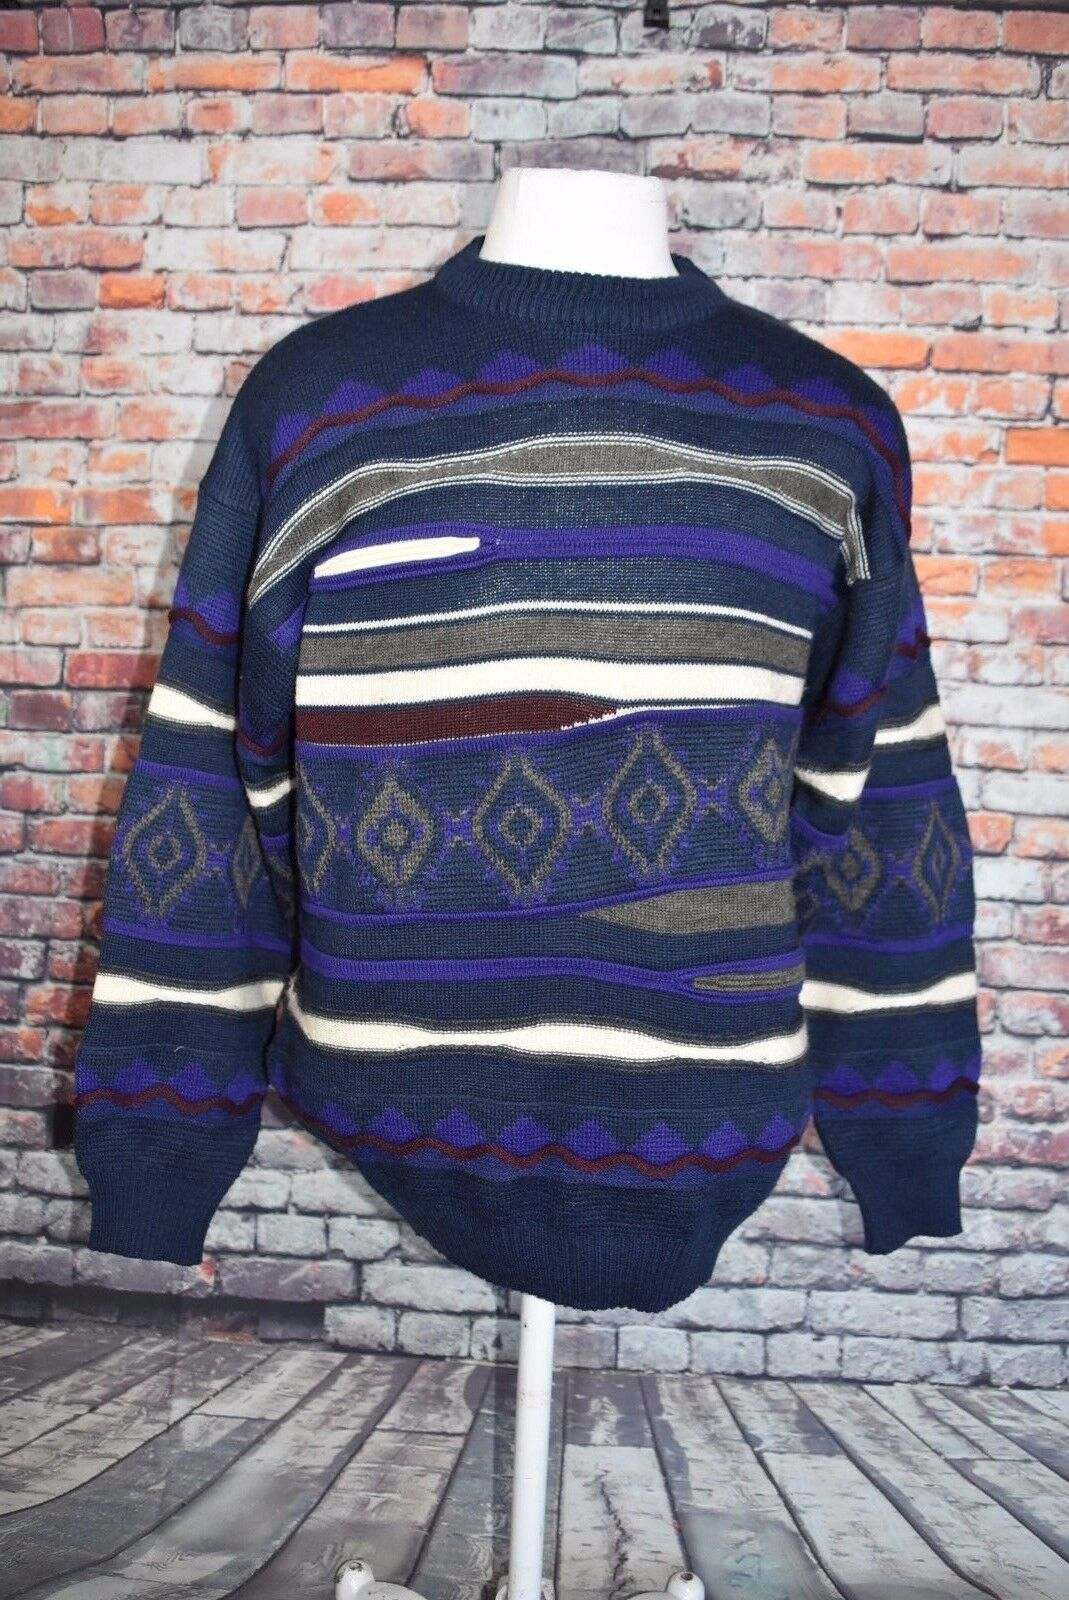 ROBERTINO CAPRA Herren WOOL BLEND PULOVER SWEATER SIZE LARGE